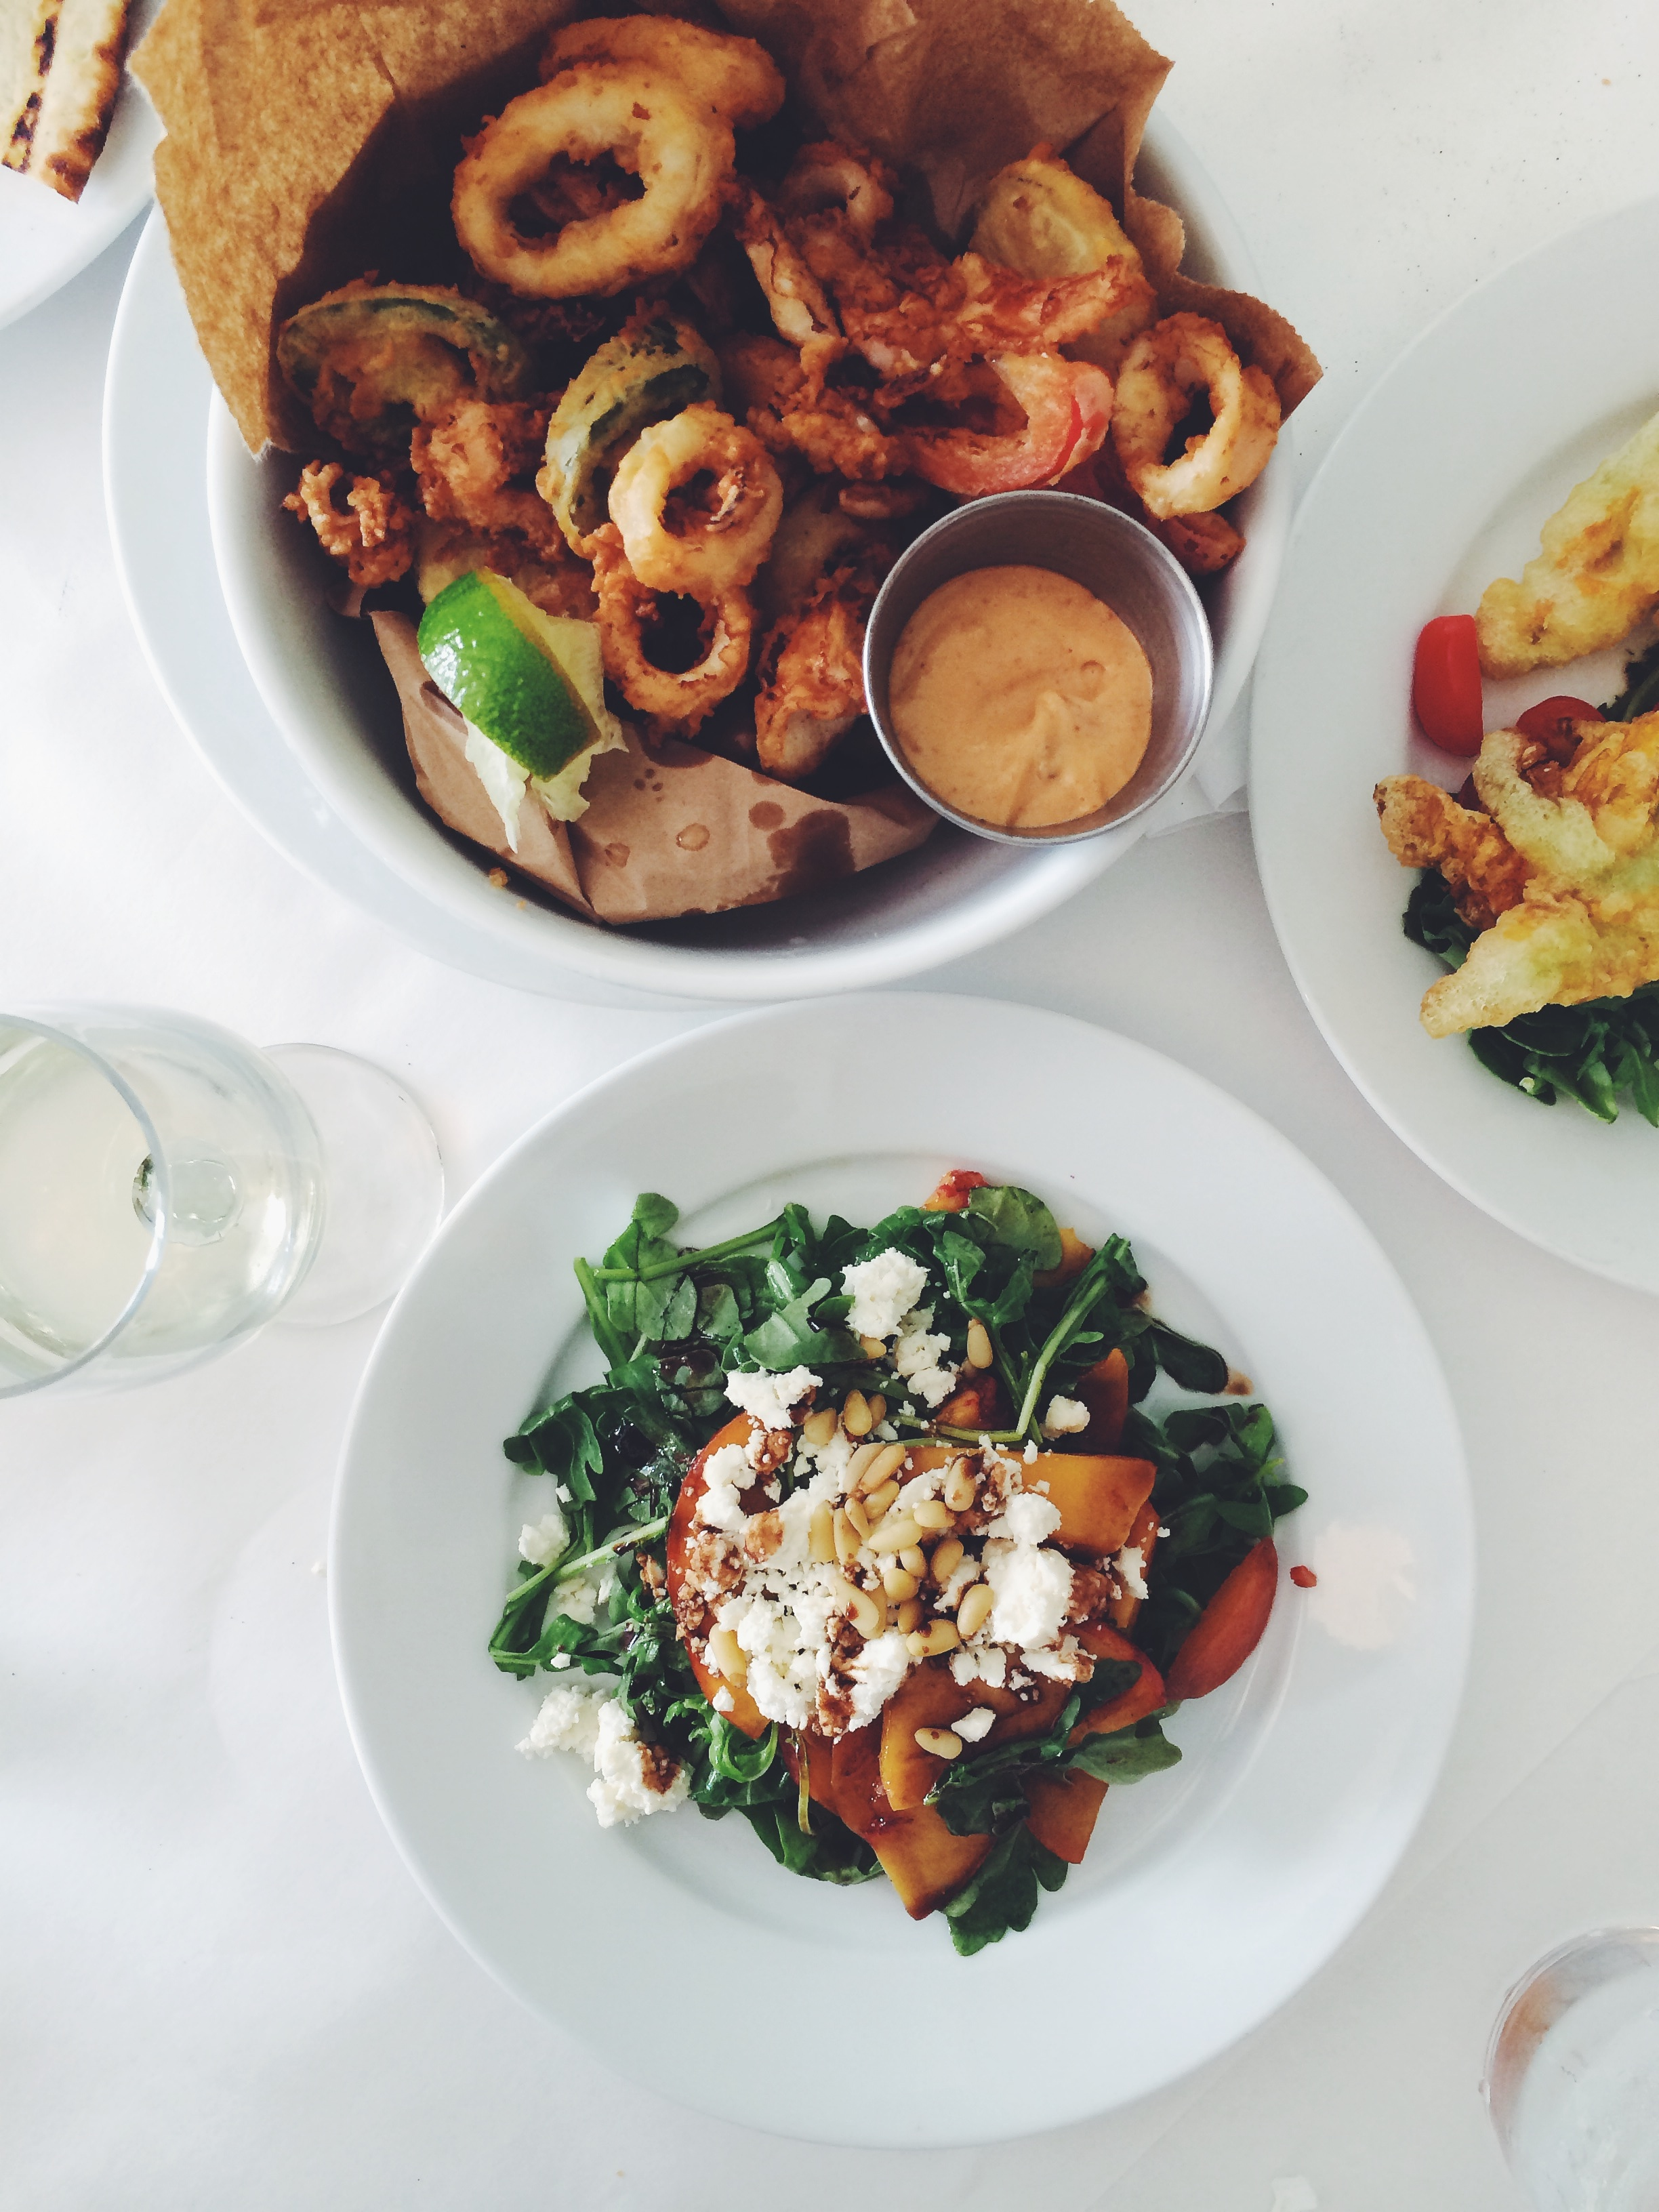 Grilled peach and arugula salad and local fritto misto at Noah's